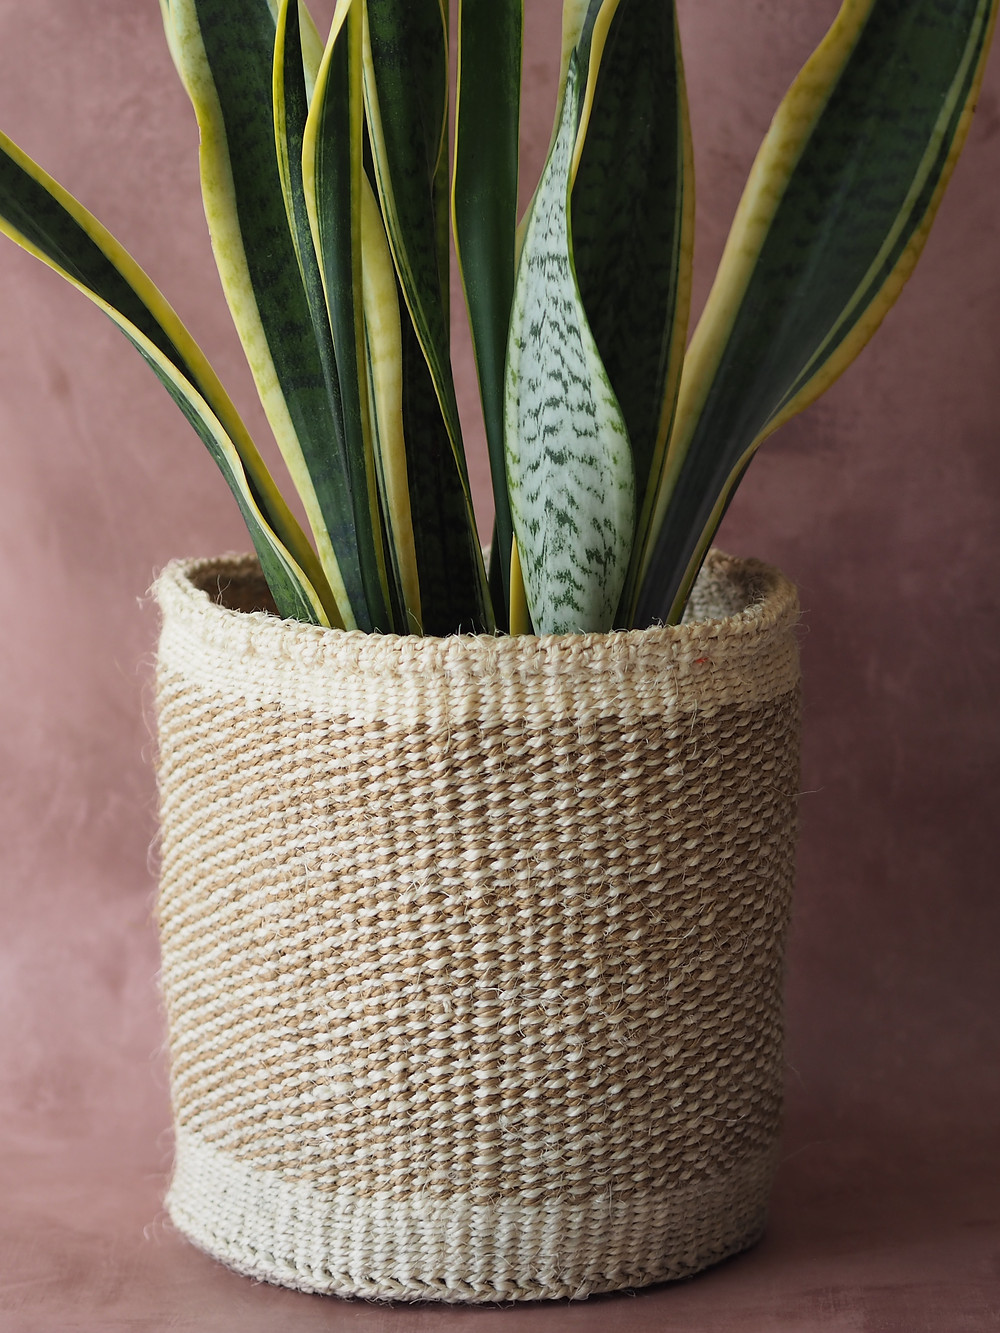 hand woven african basket available to buy at Wild Home Online on Etsy